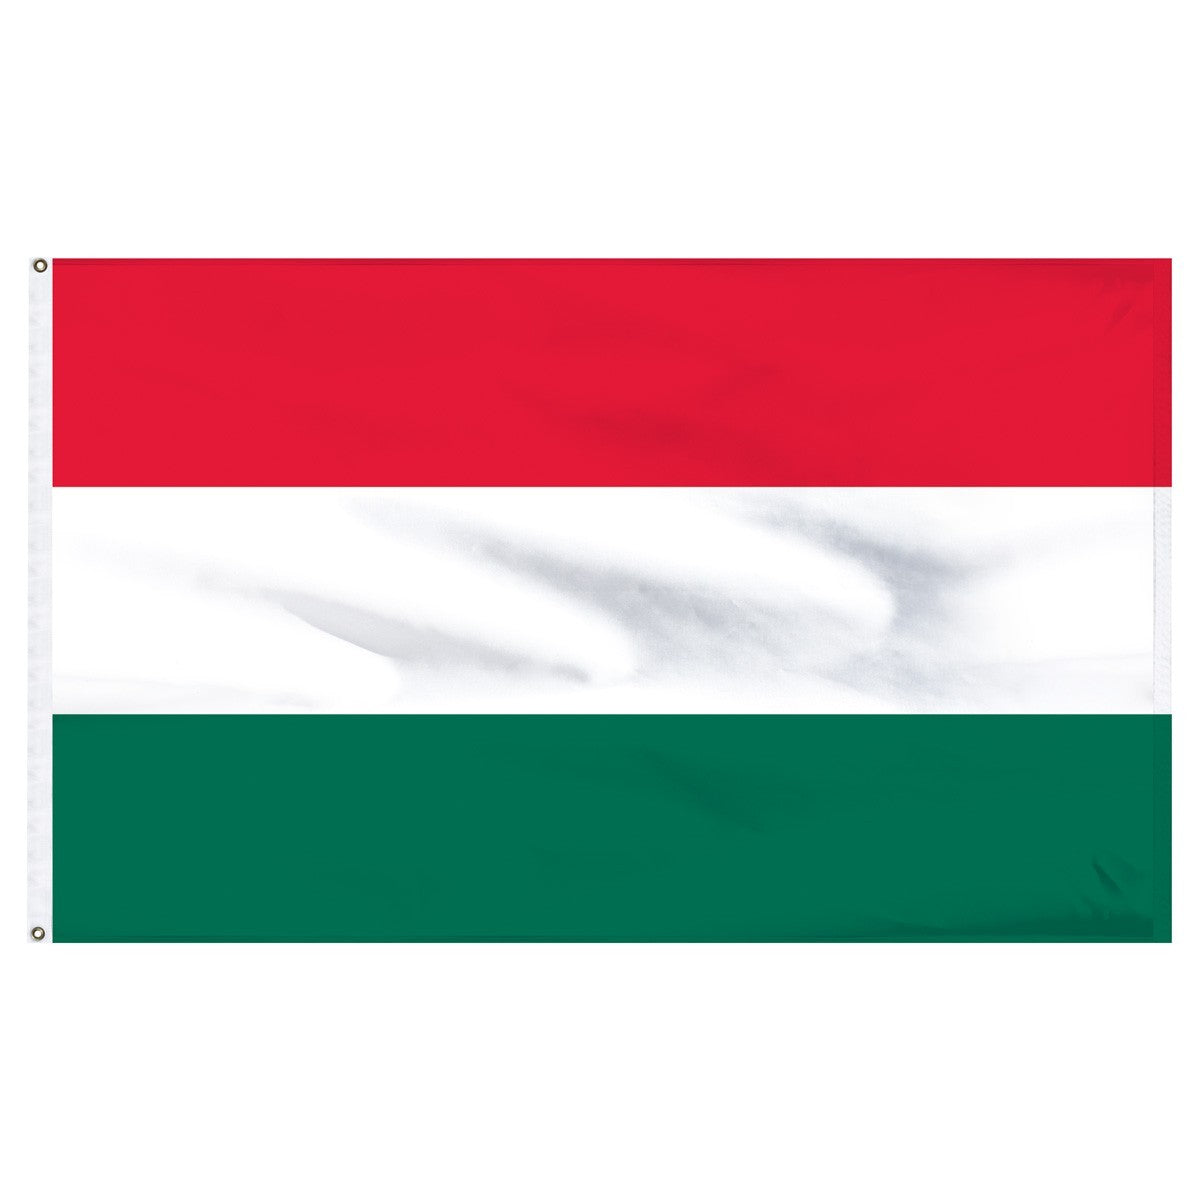 Hungary Flags For Sale by 1-800 Flags